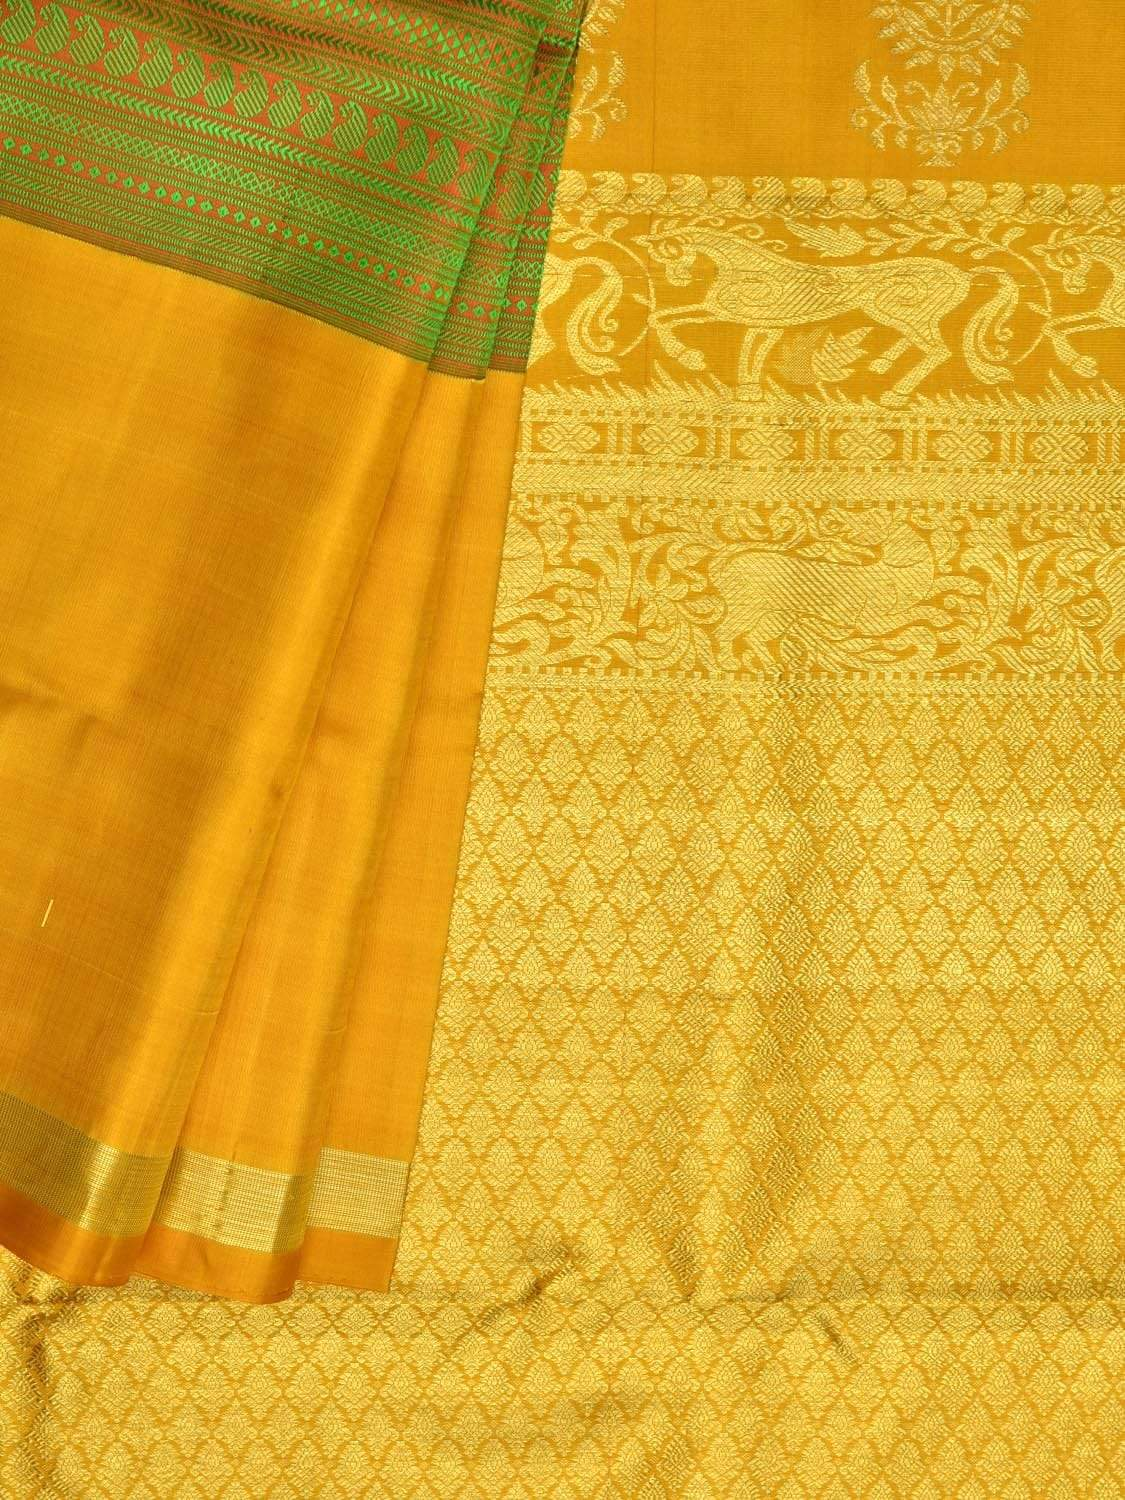 Yellow Kanchipuram Silk Handloom Saree with Mango Pallu and Middle Brocade Design k0487